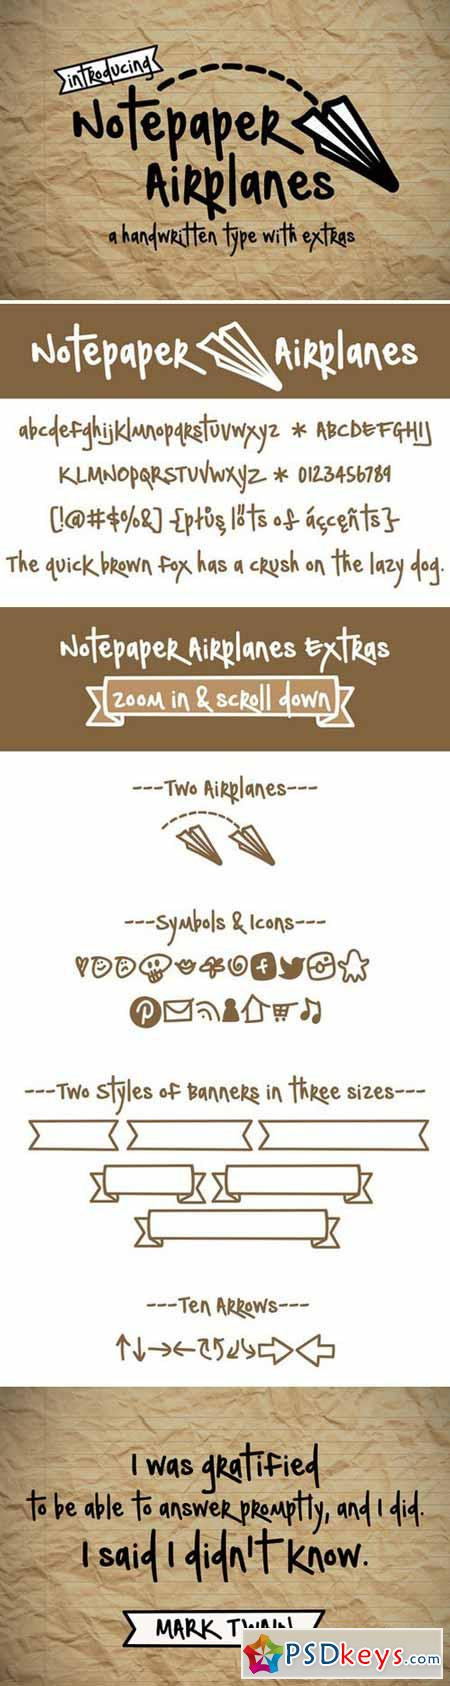 Notepaper Airplanes 327158